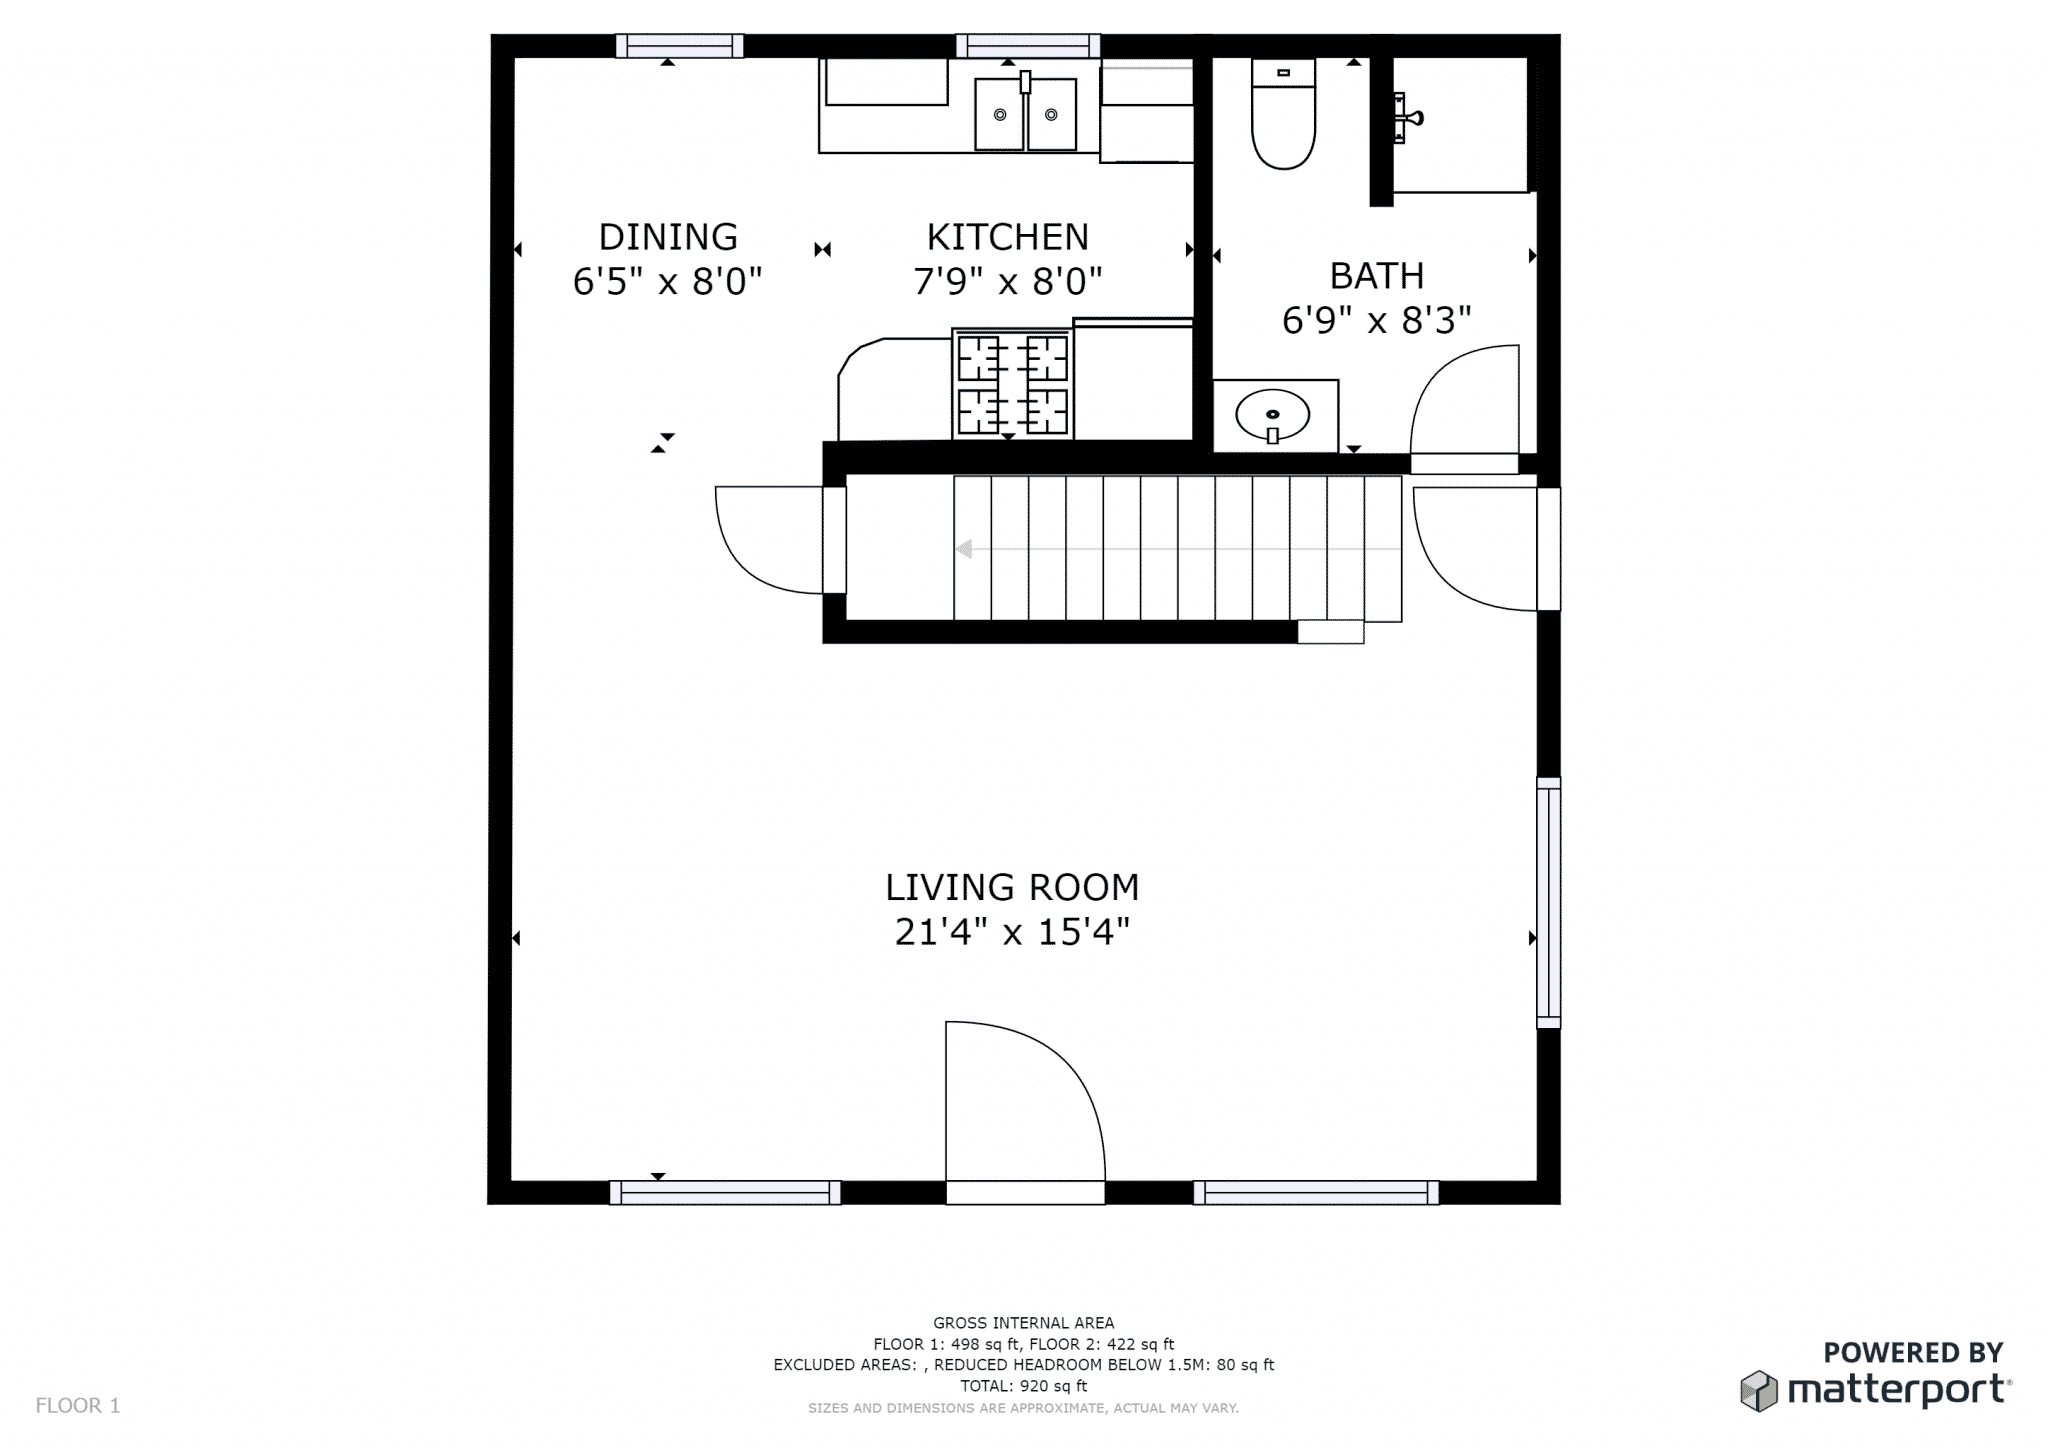 David Floor Plan, Downstairs